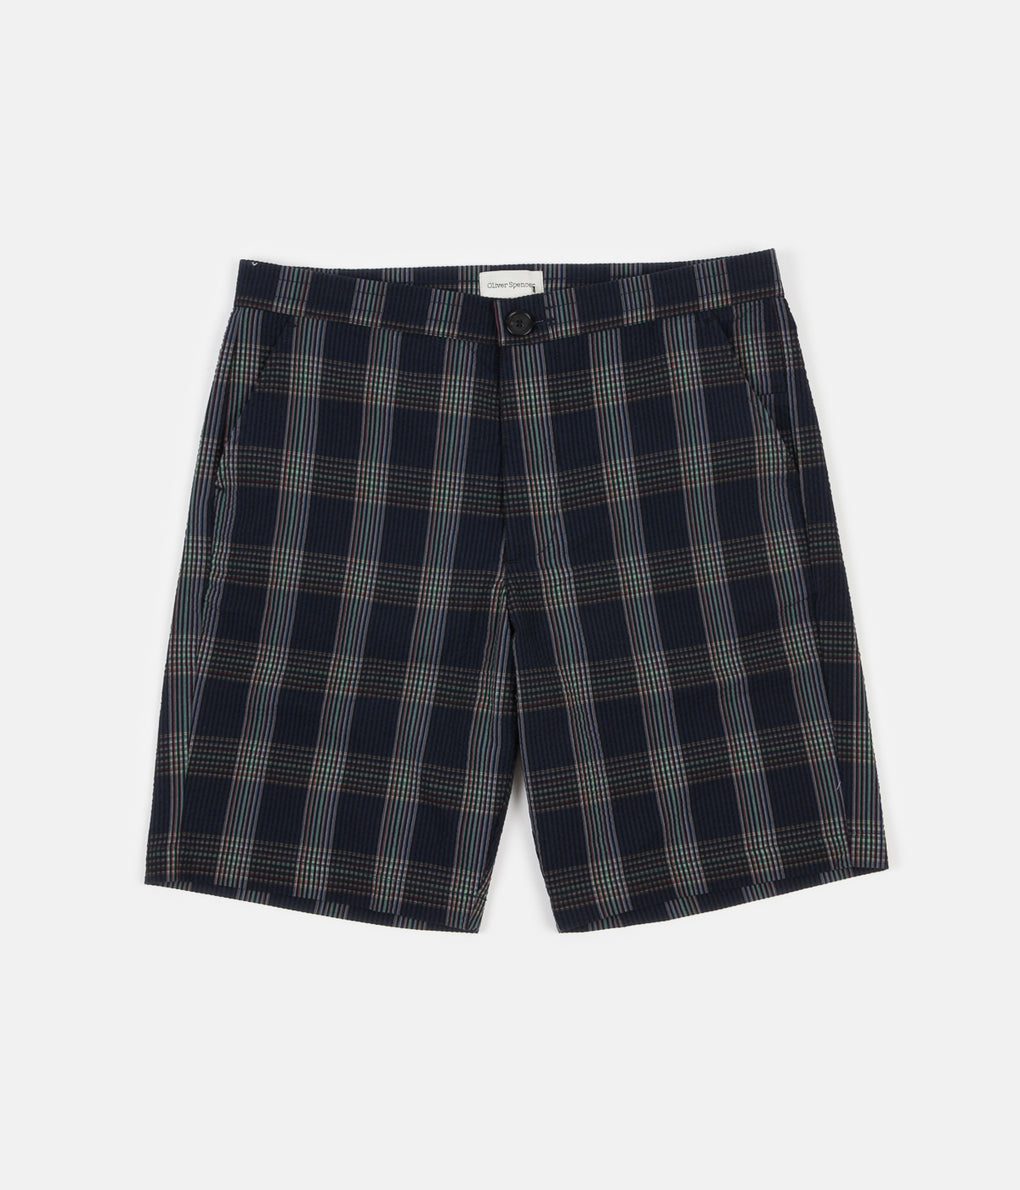 Oliver Spencer Drawstring Shorts - Ainsworth Navy